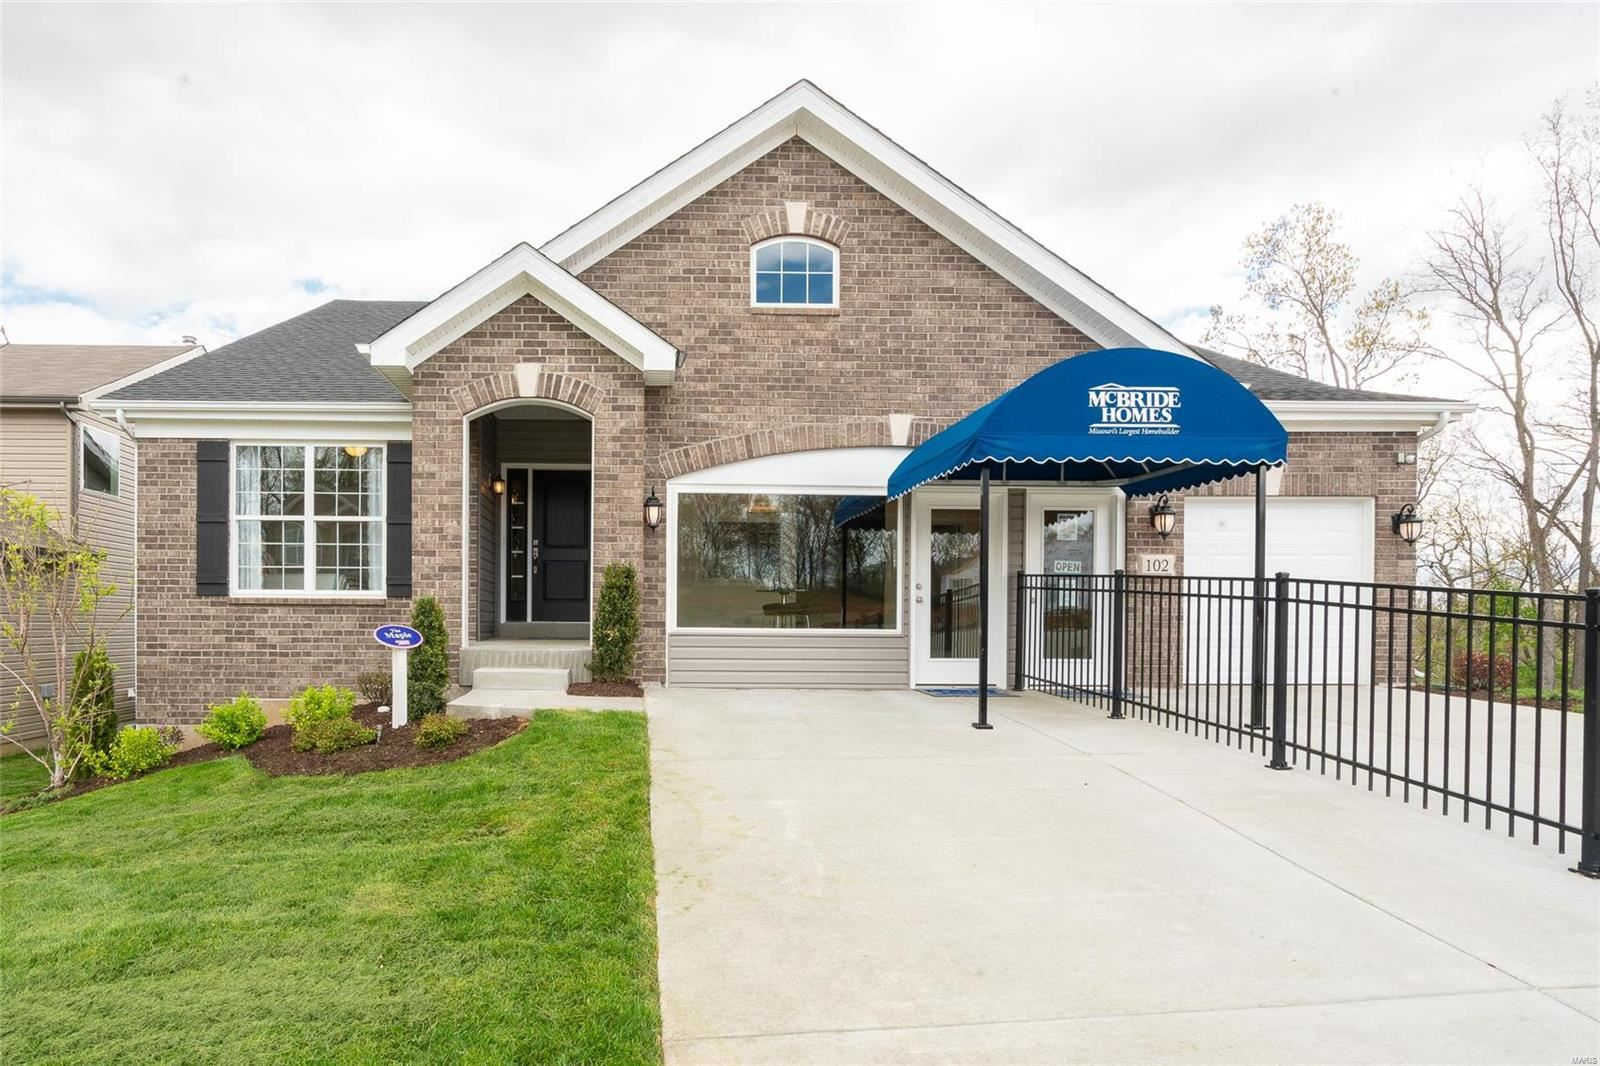 1 Maple Exp at Shadow Point, Oakville, MO 63129 - MLS#: 21072372